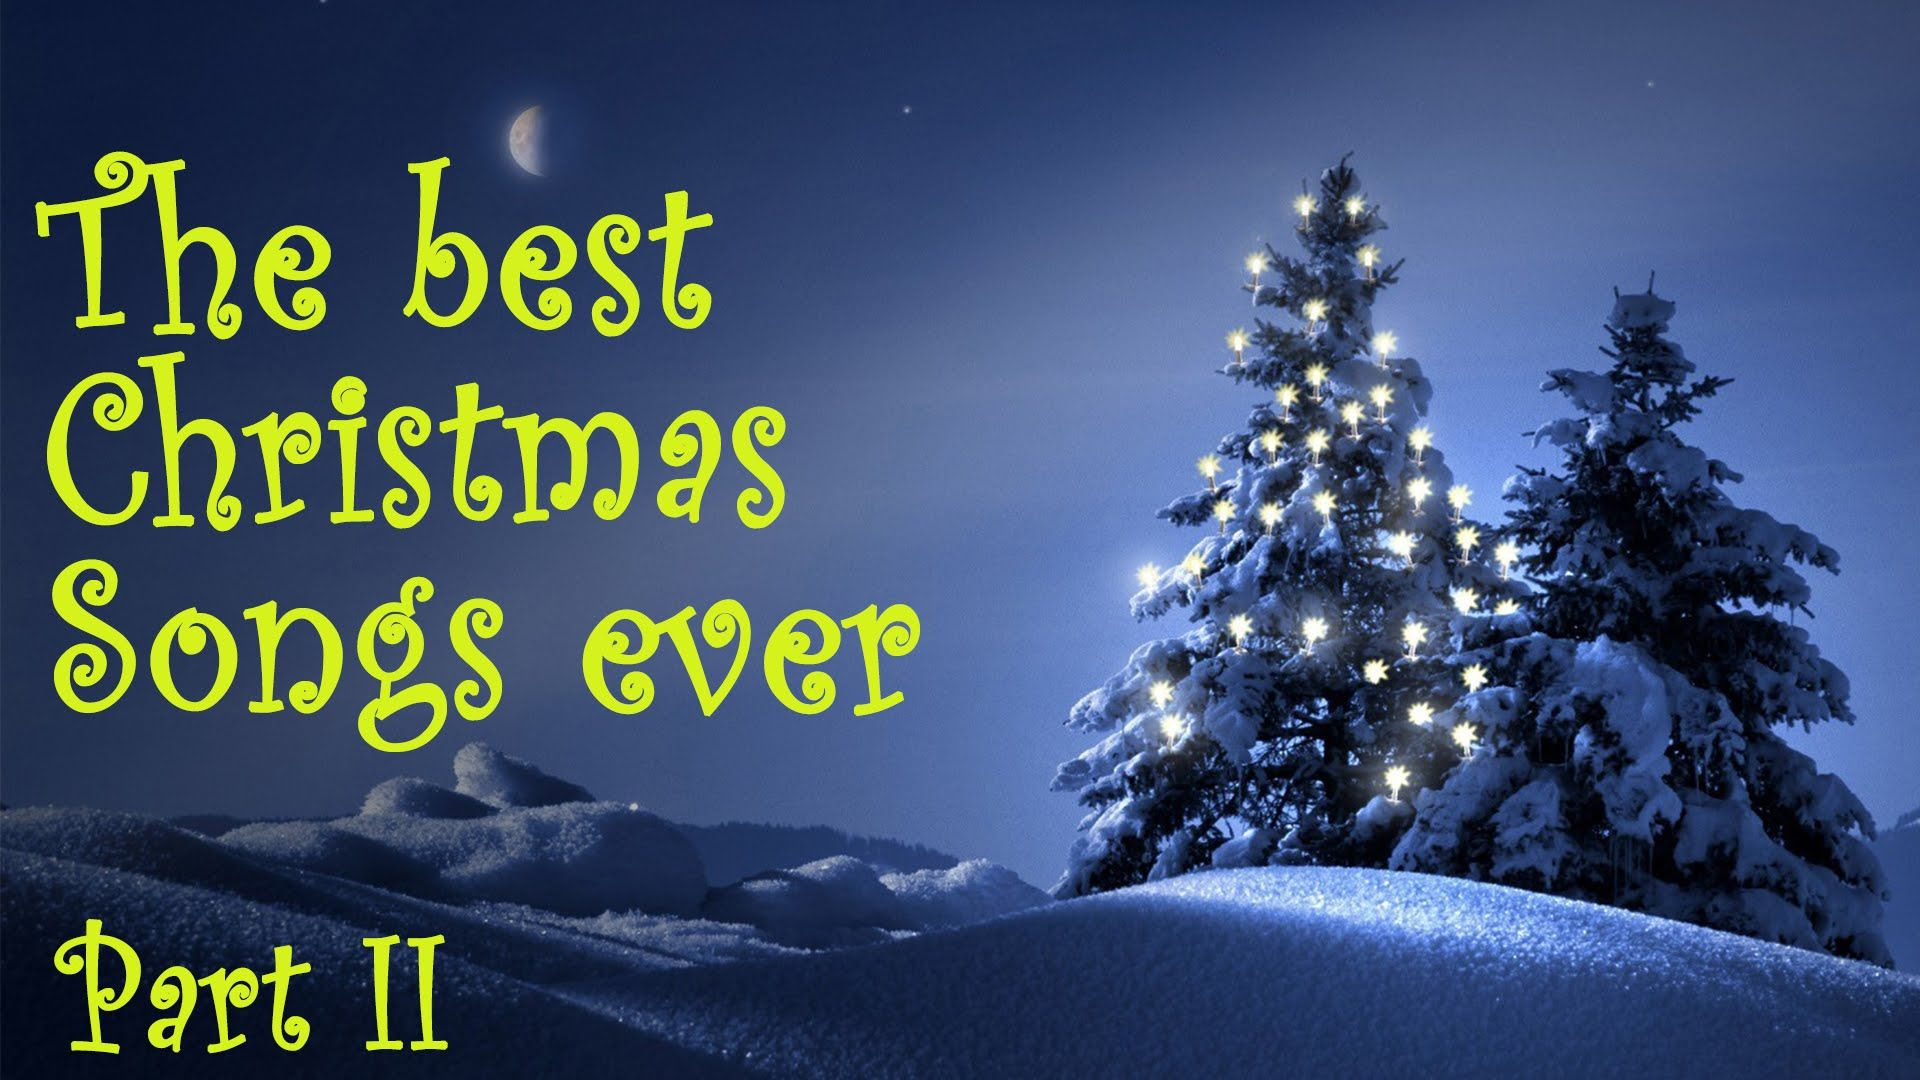 The best Christmas Songs ever - part II | Holiday | Pinterest ...